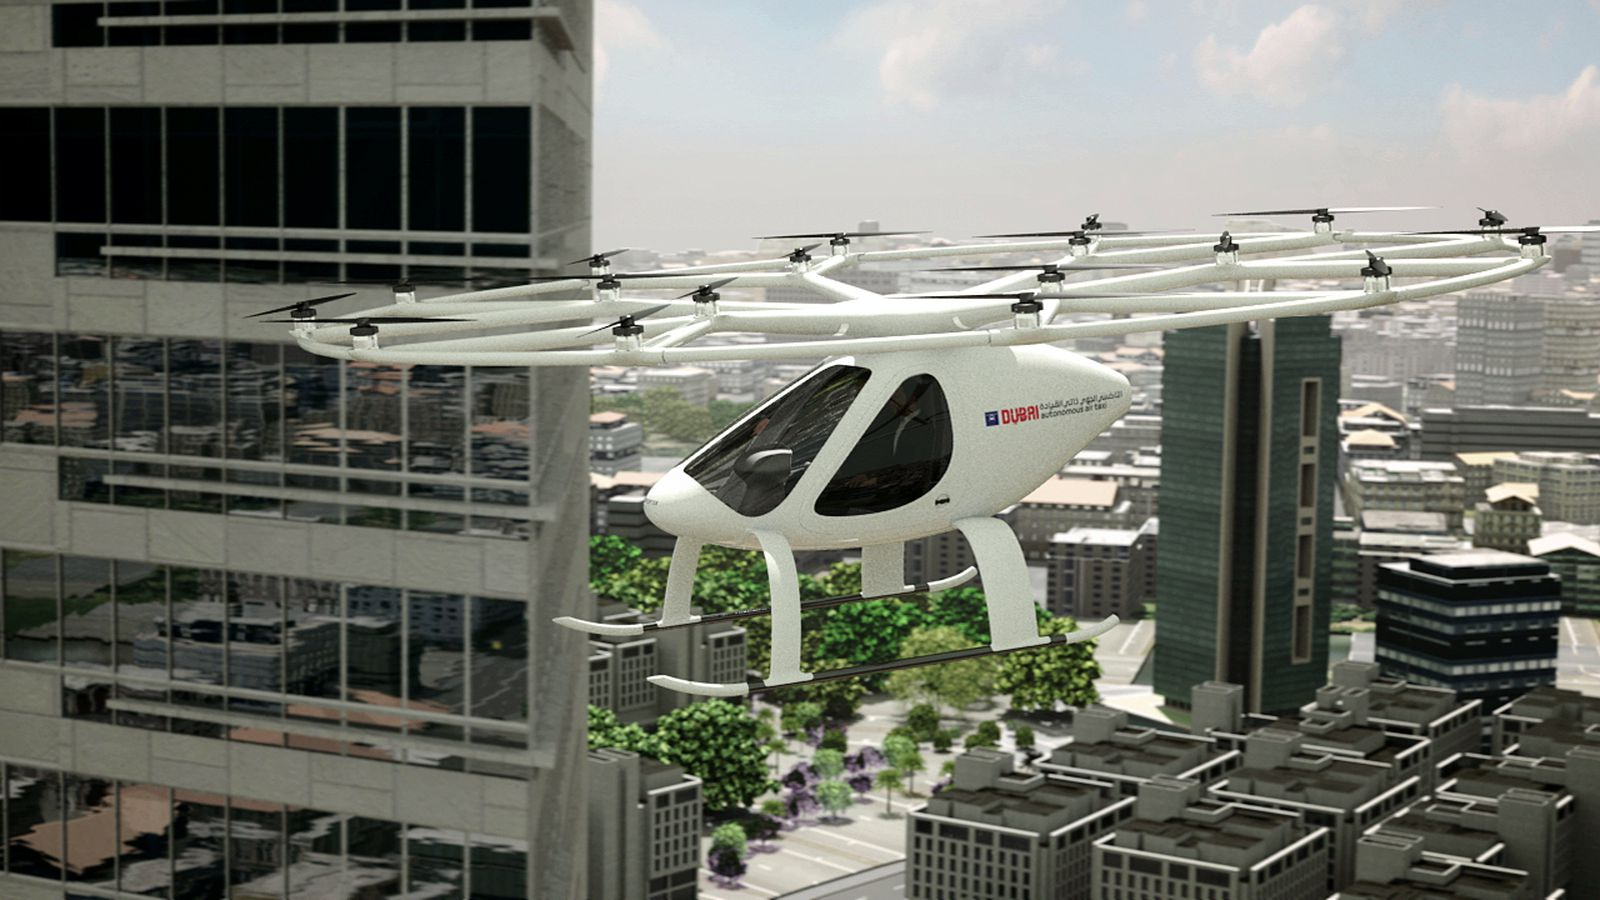 This Electric Multicopter will Take to the Skies in Dubai Later this Year